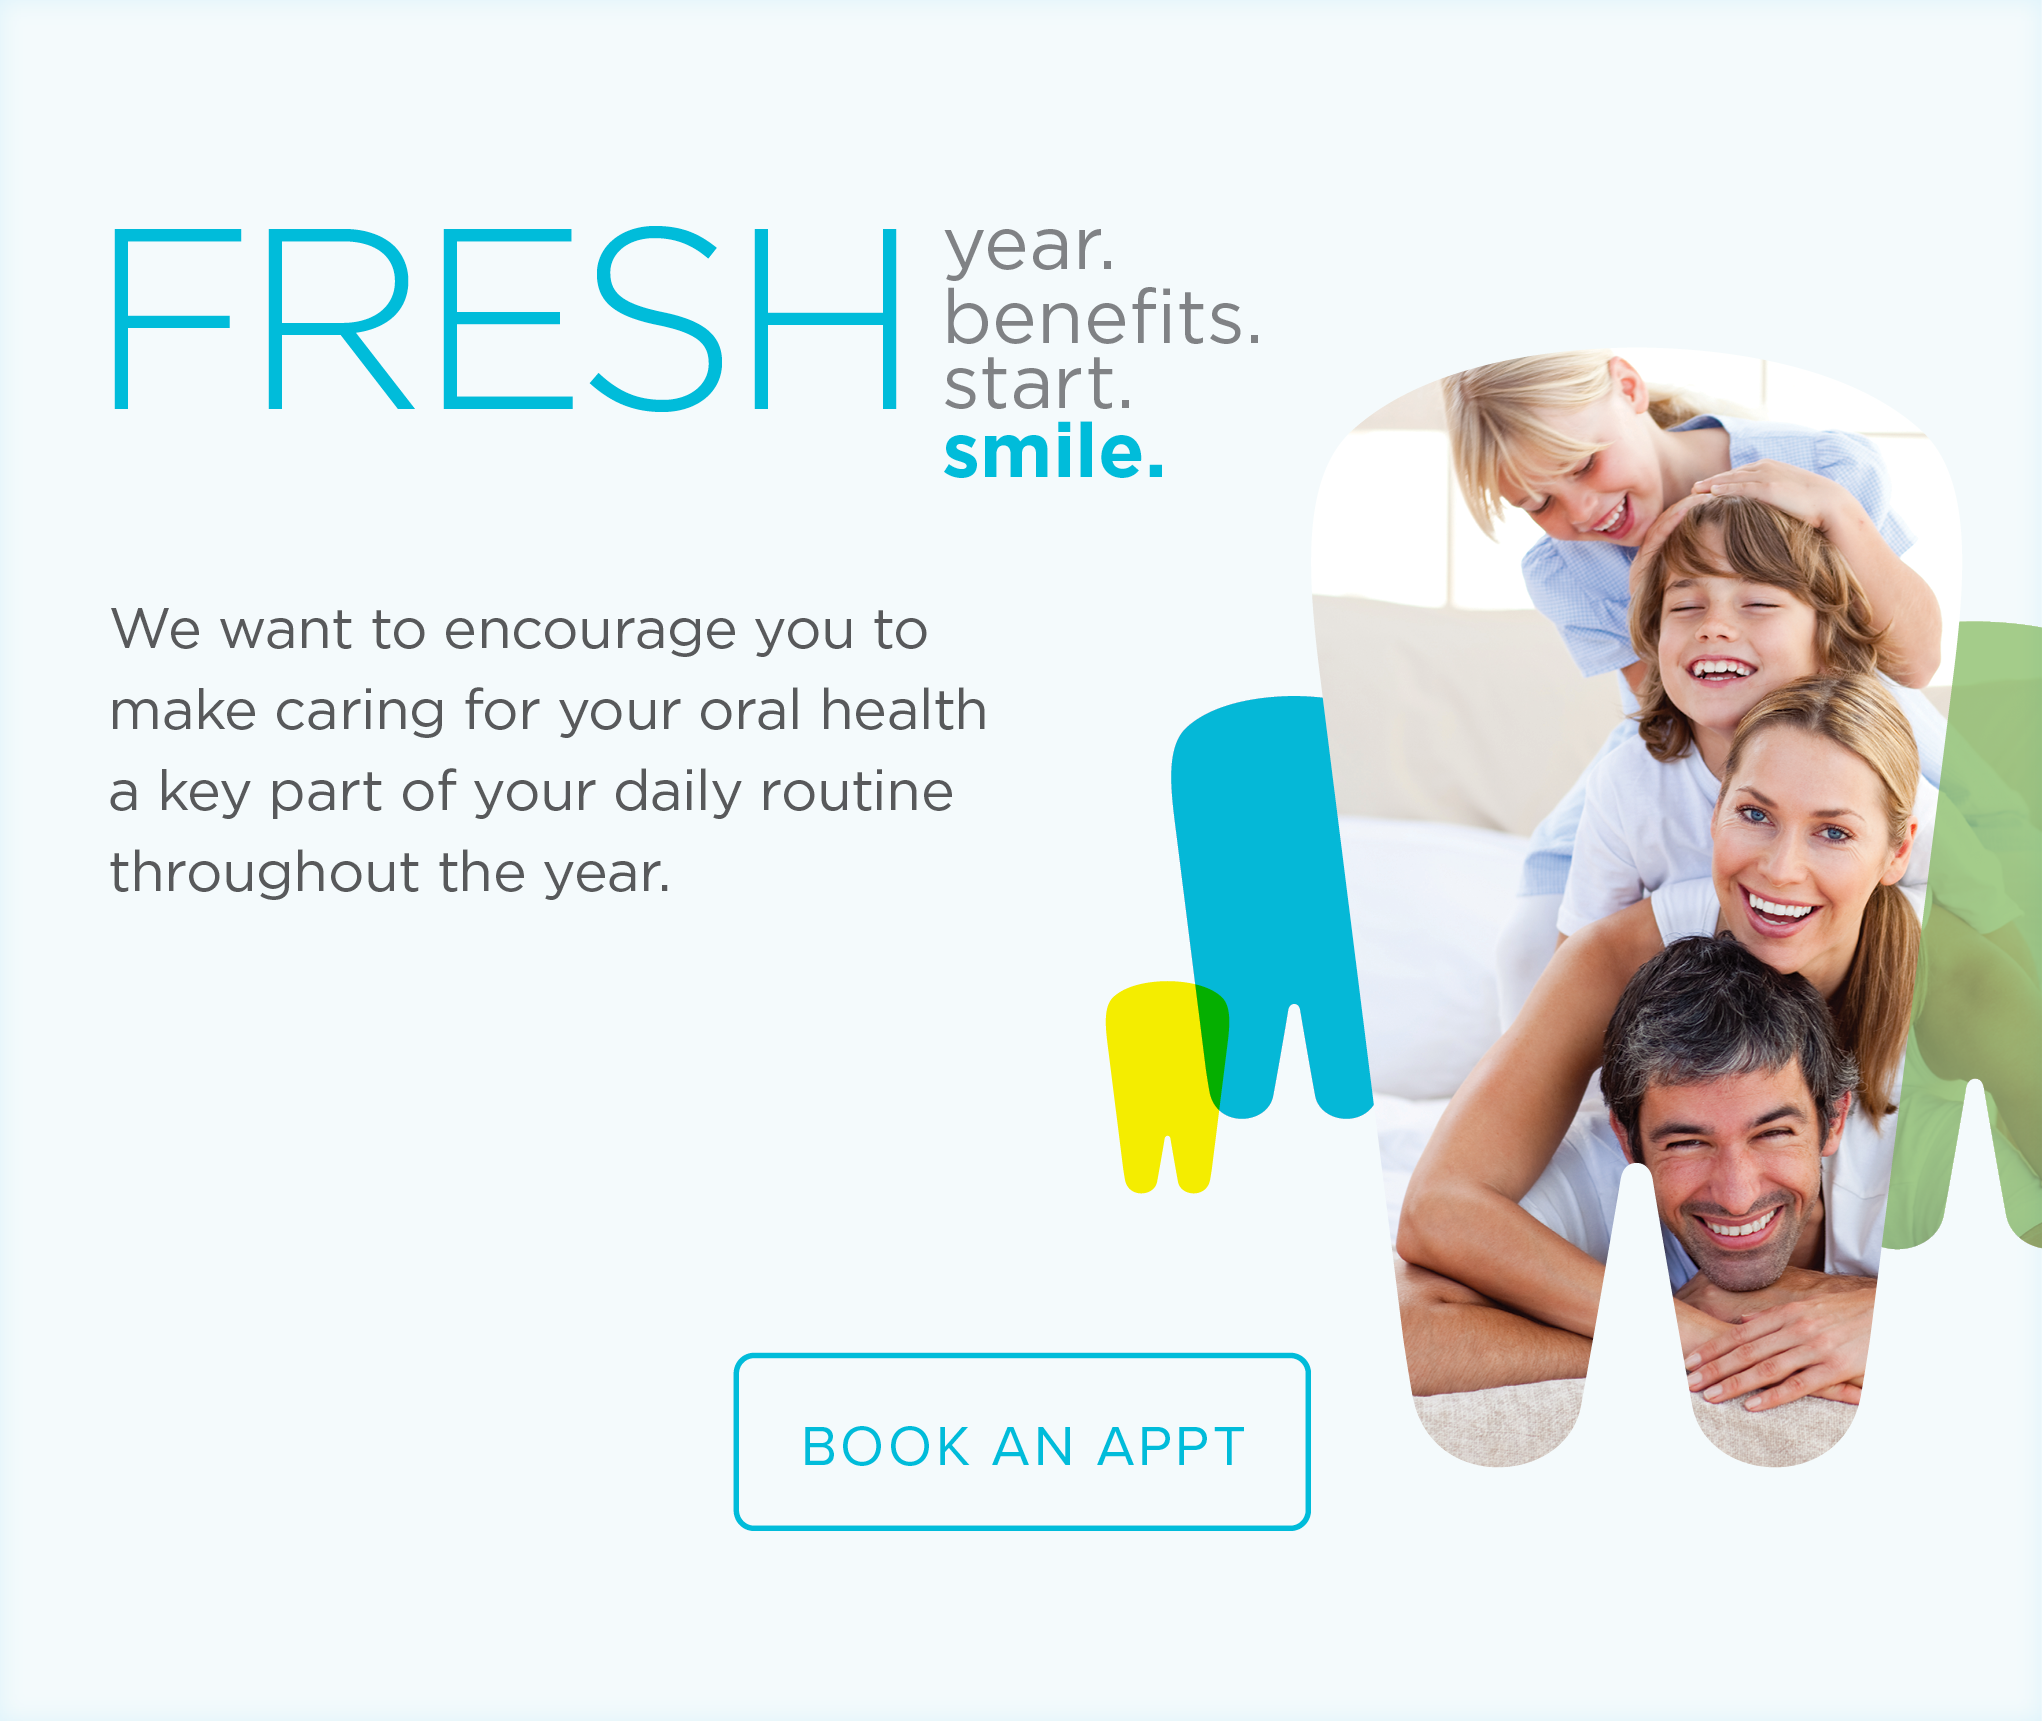 Tracy Smiles Dentistry and Orthodontics - Make the Most of Your Benefits